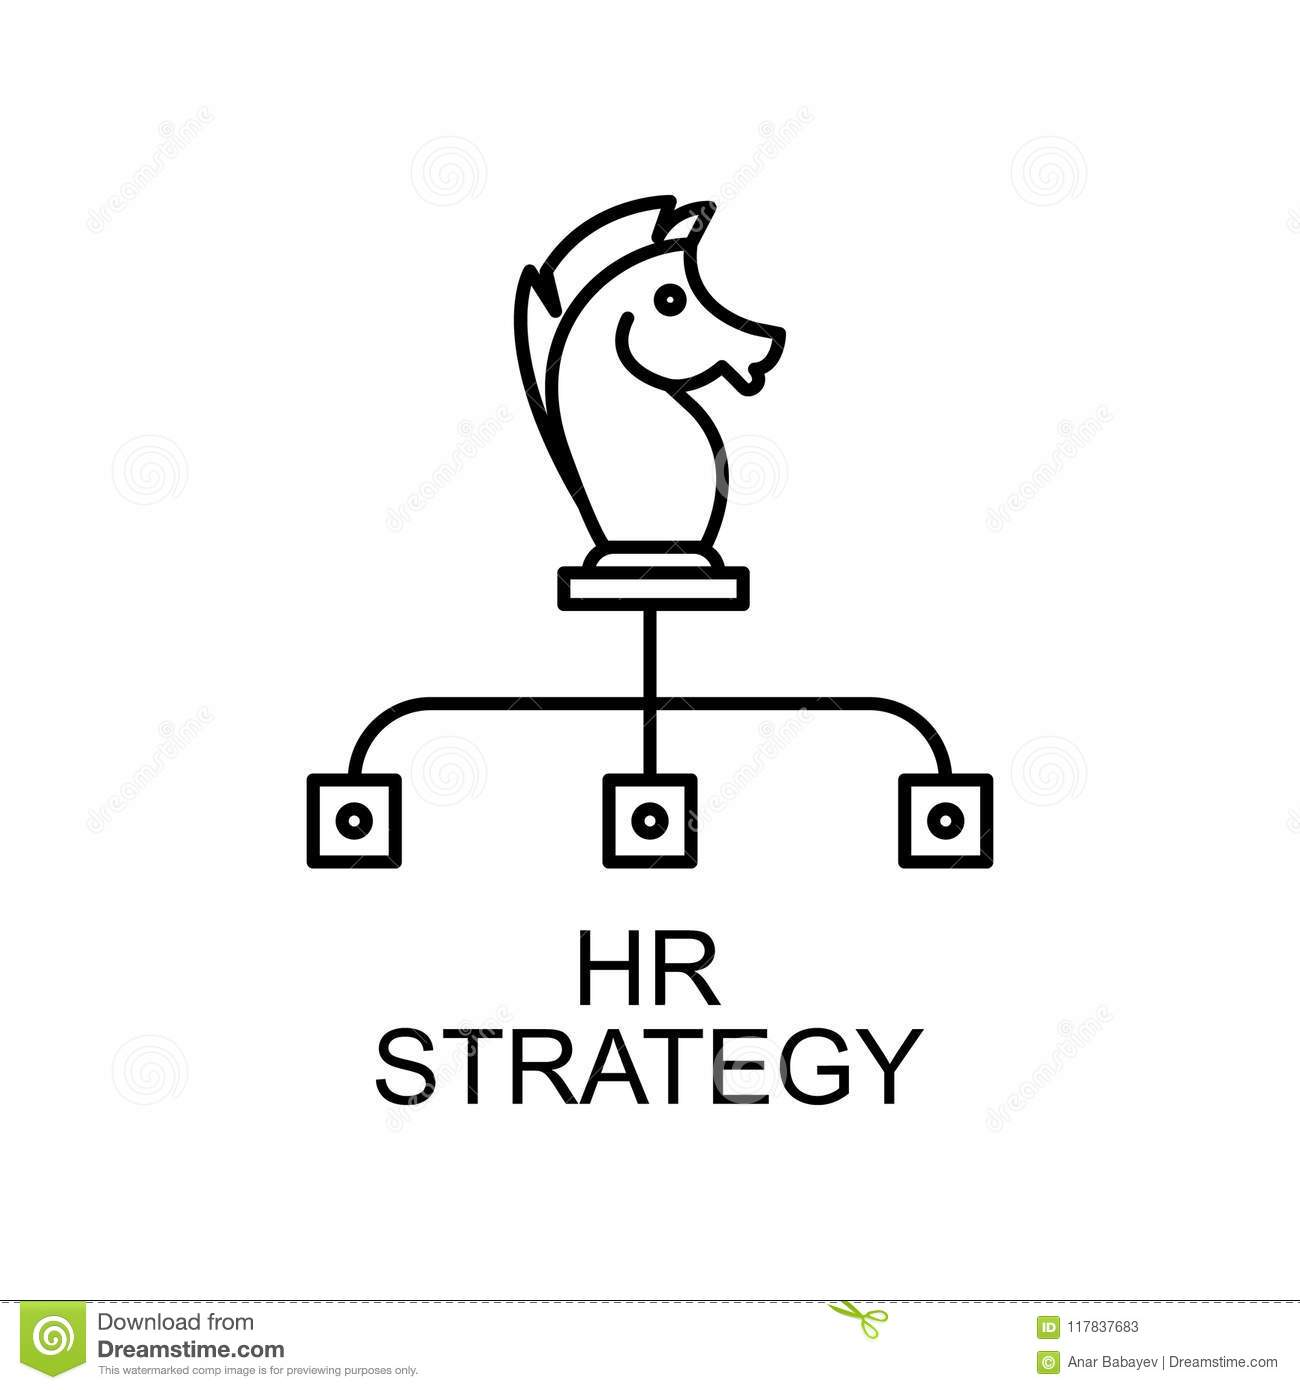 HR Strategy Line Icon. Element Of Human Resources Icon For